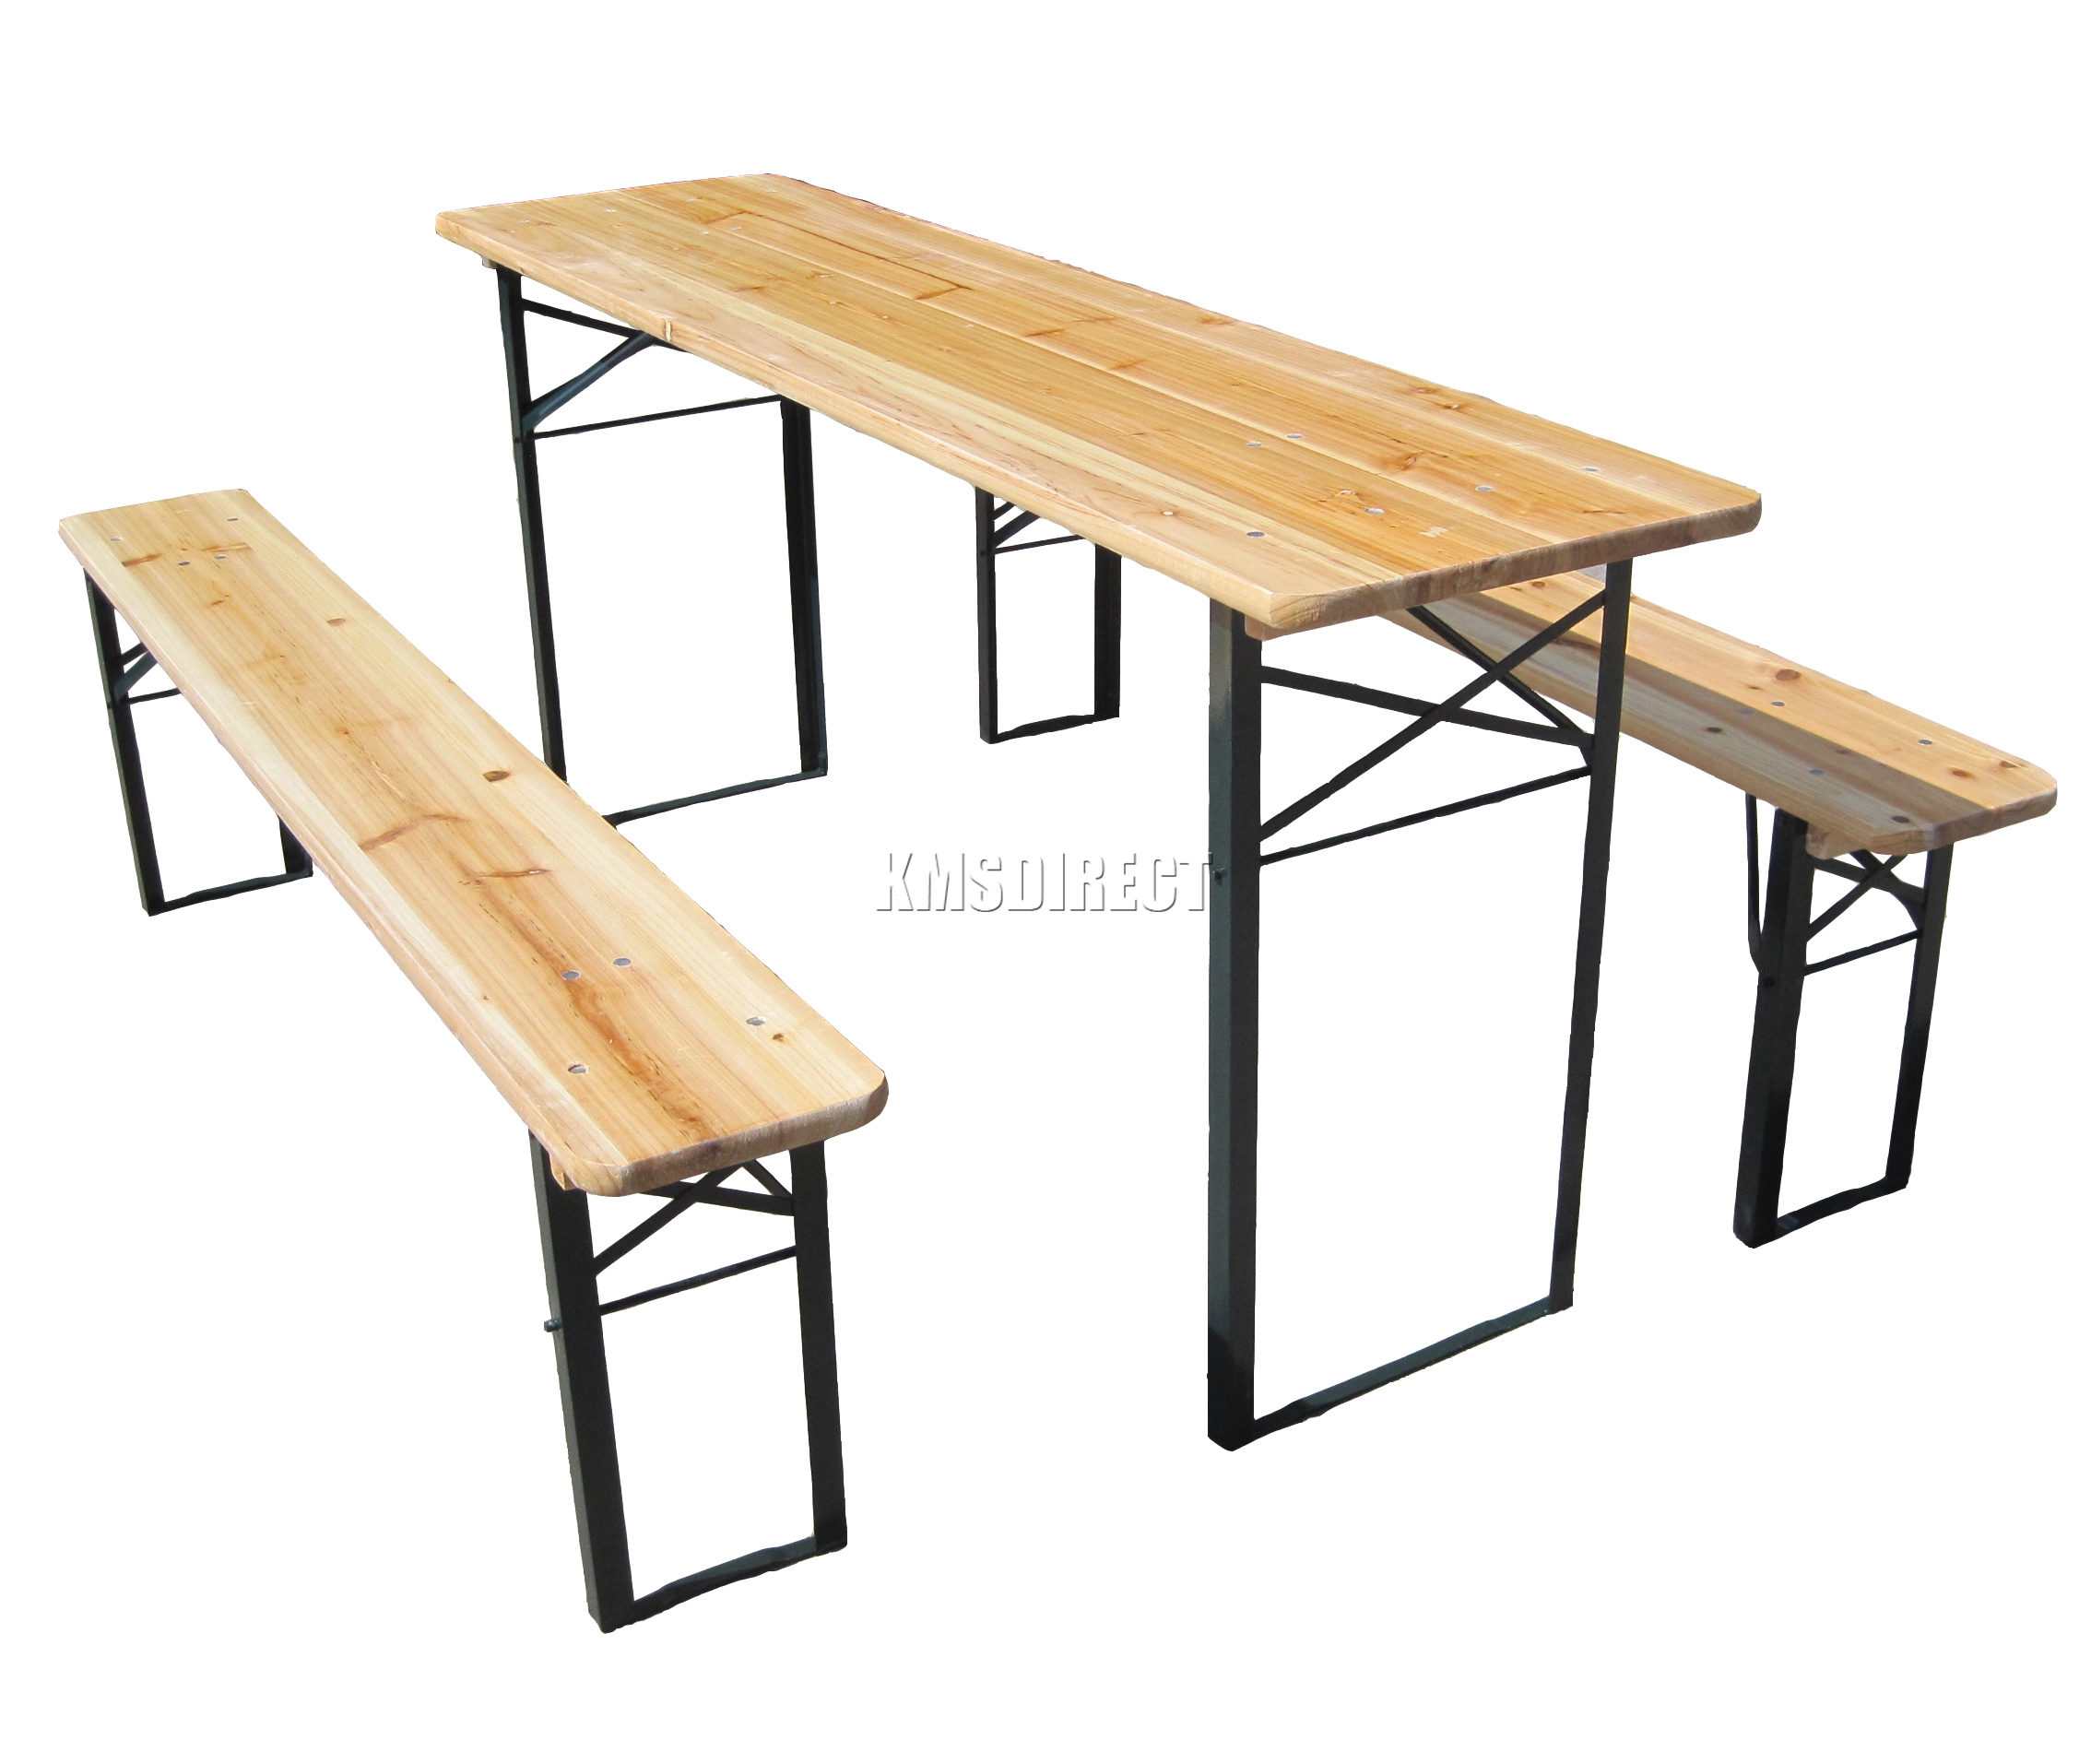 Wooden Folding Beer Table Bench Set Trestle Party Pub Garden Furniture Steel Leg Ebay